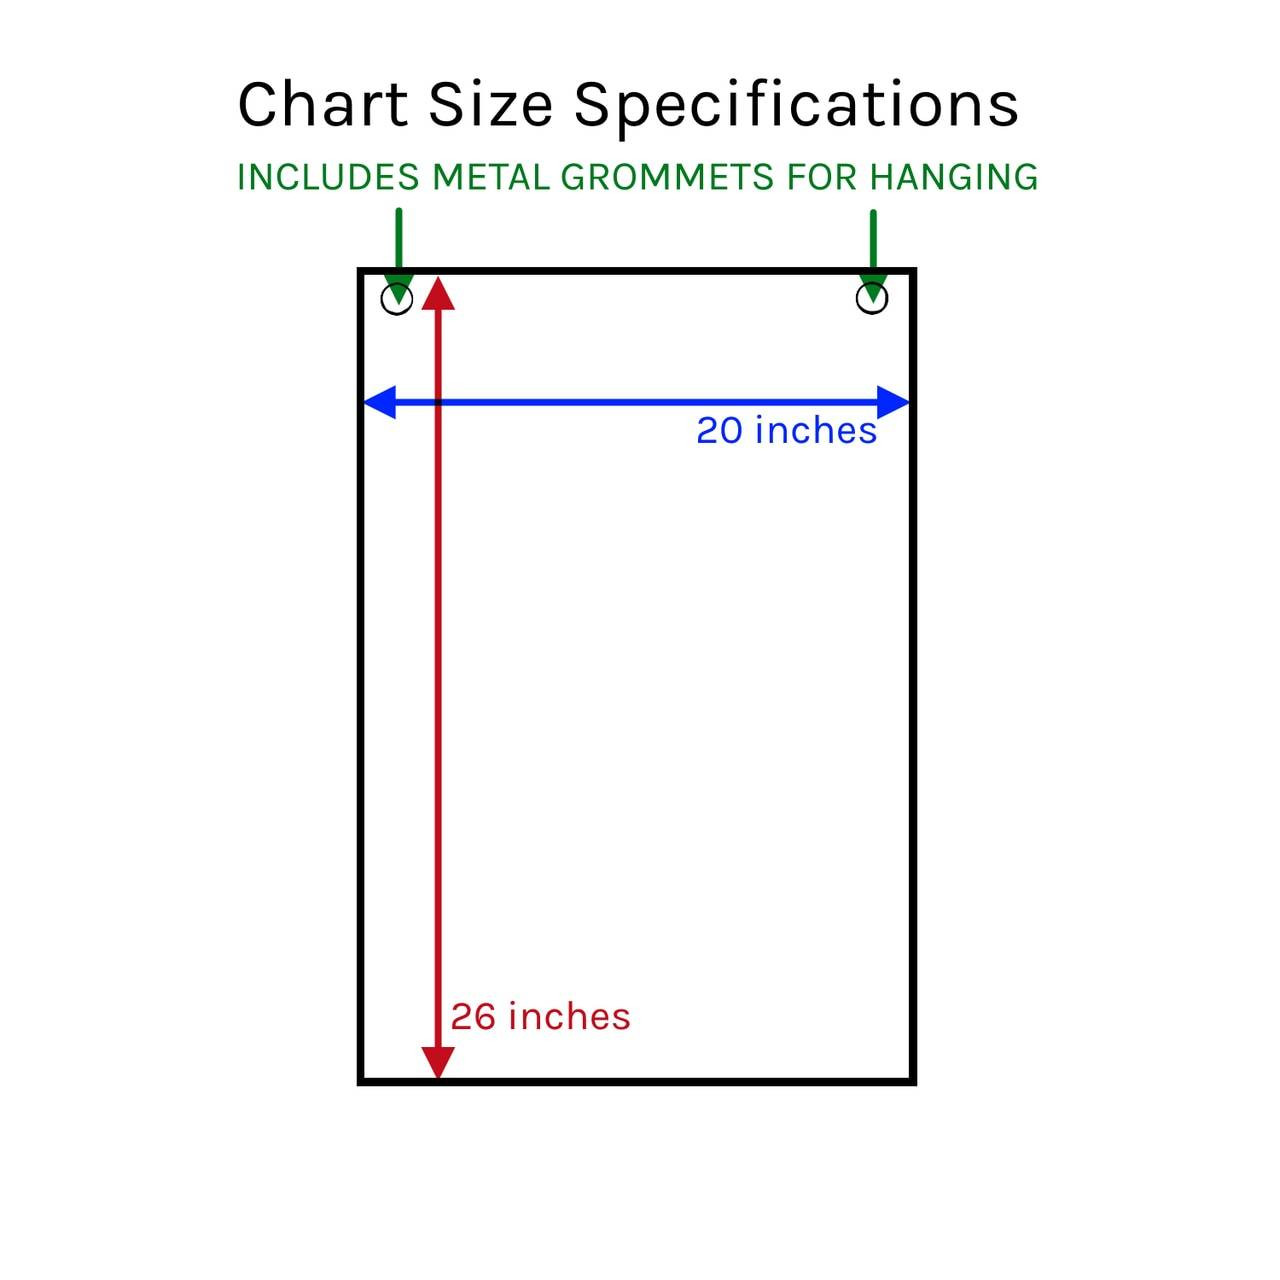 Customizable Antique Anatomy Gestation Pregnancy Womb Reference Chart Education Chart Breast Womens Health 8x10 9x12 11x14 16x20 18x24 24x30